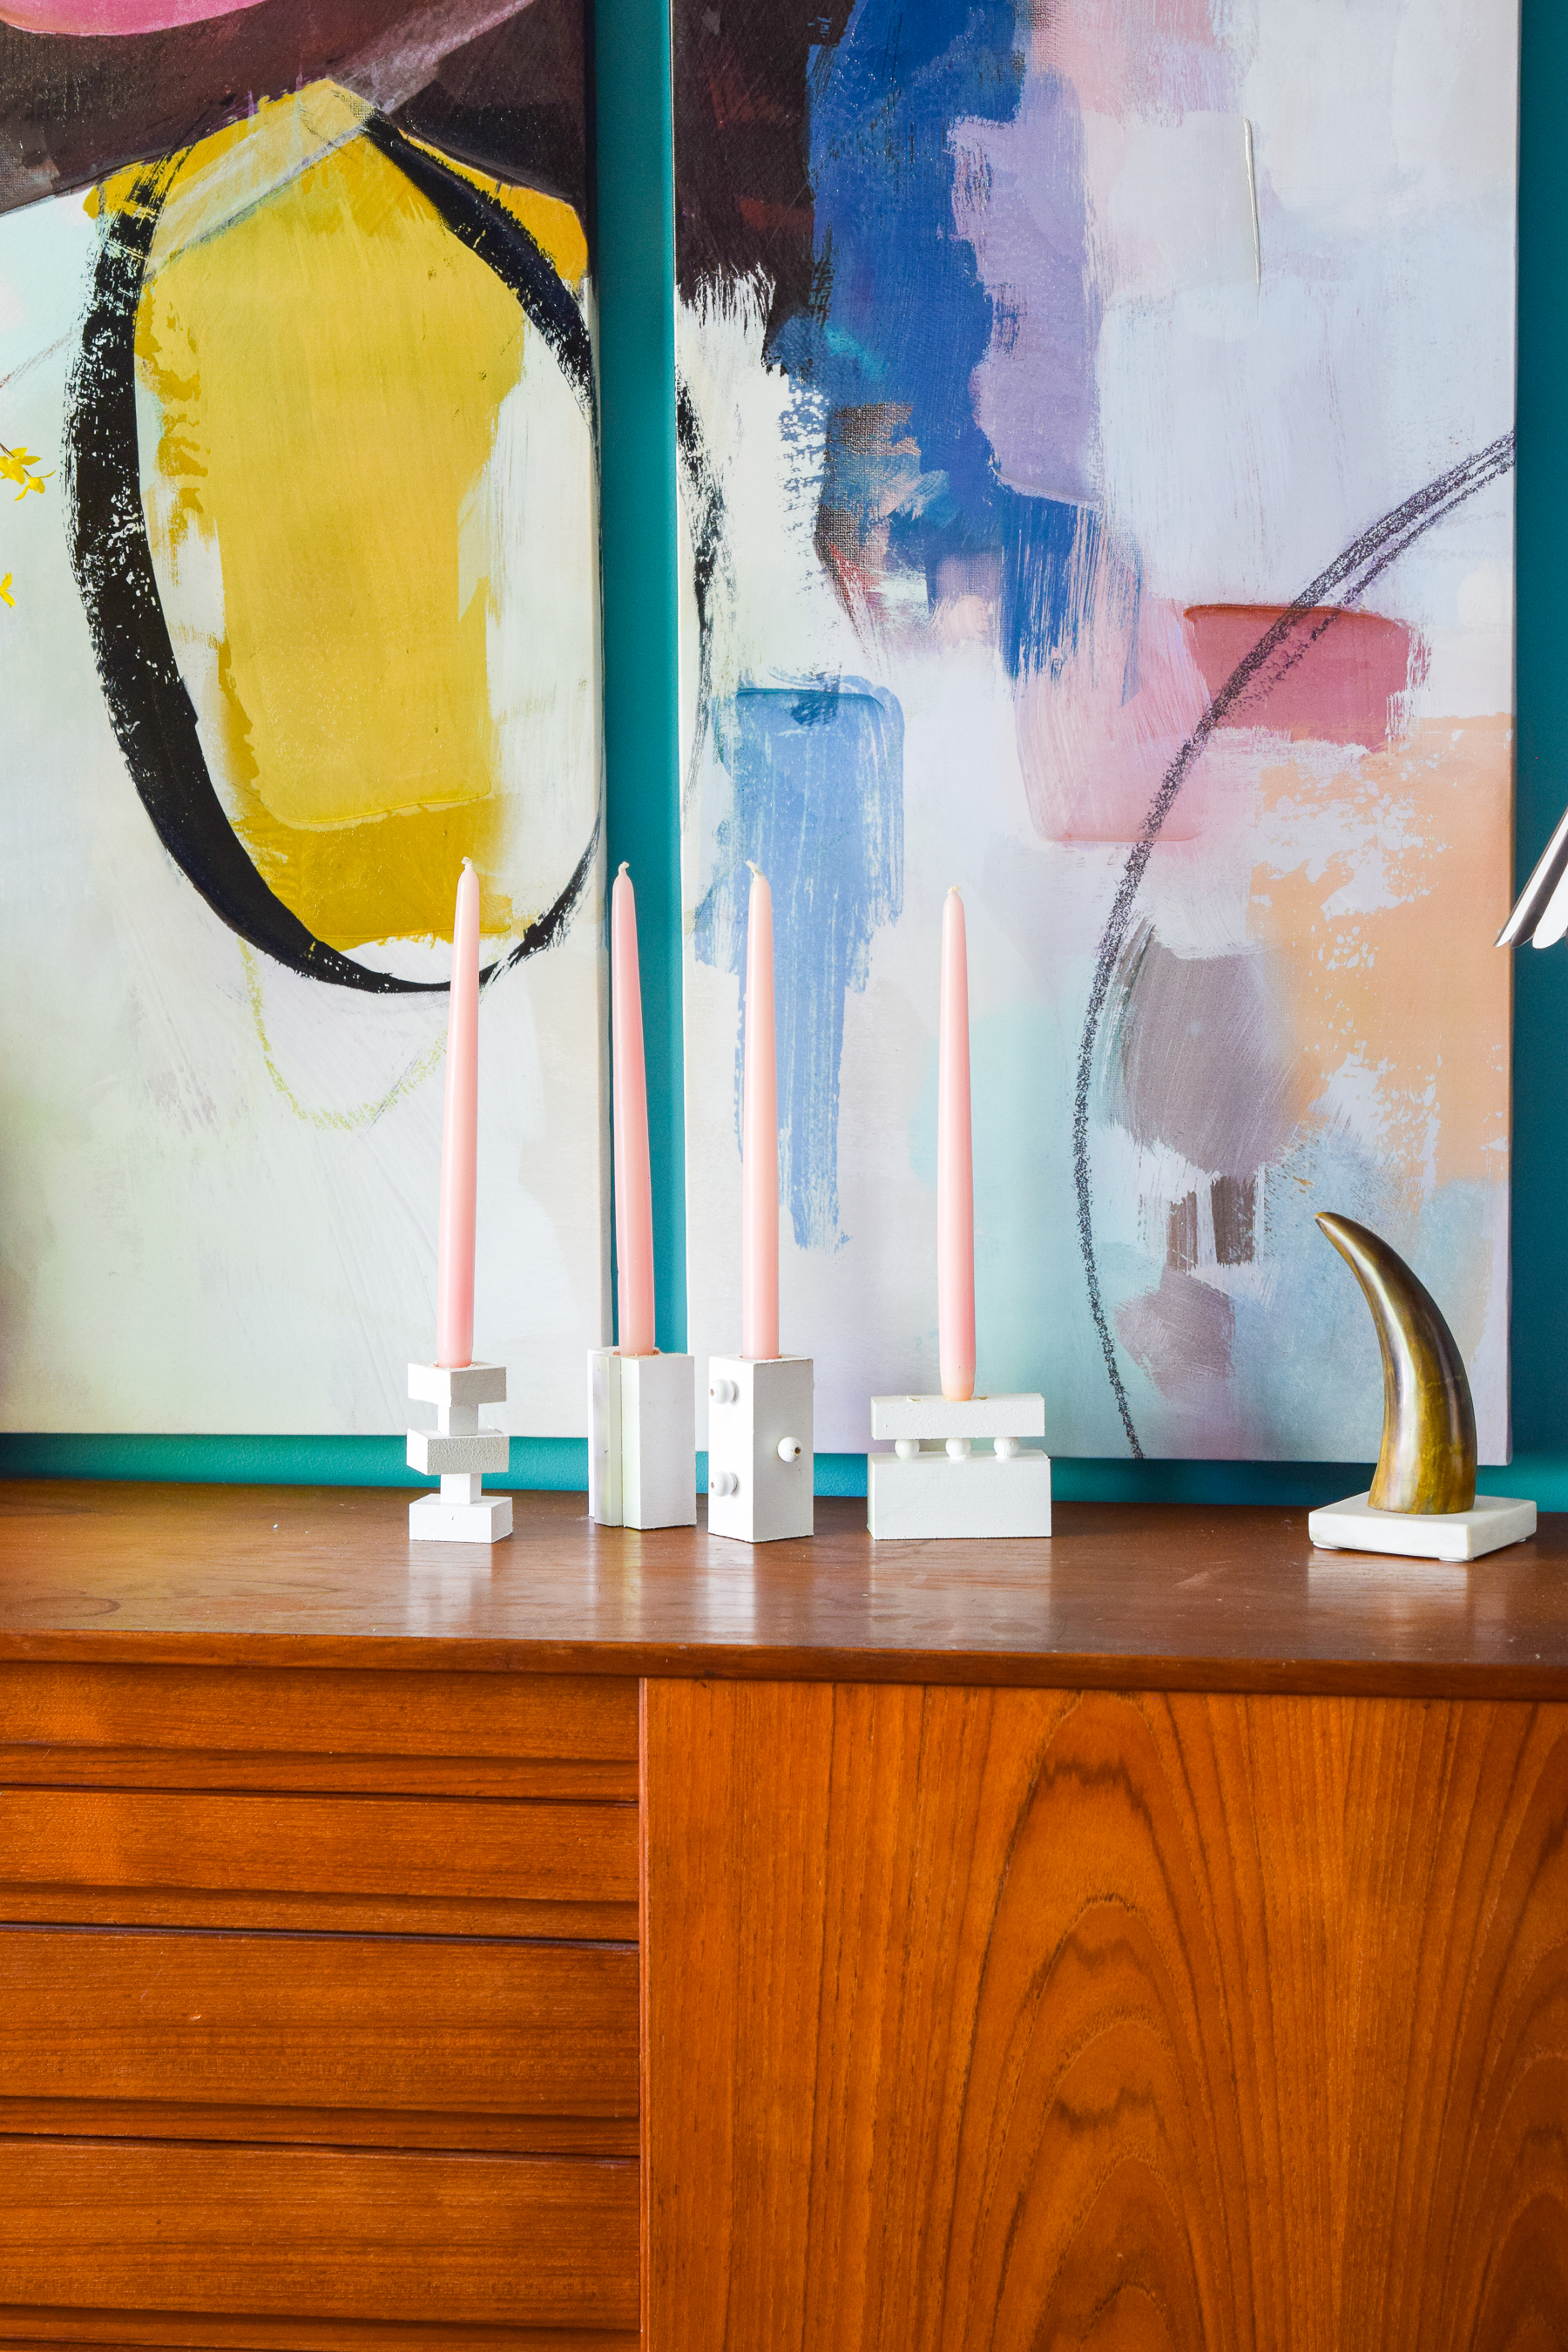 These DIY Modern Wood Candlestick Holders that I made add a pop of geometric modern design, and you will love how easy they were to make!